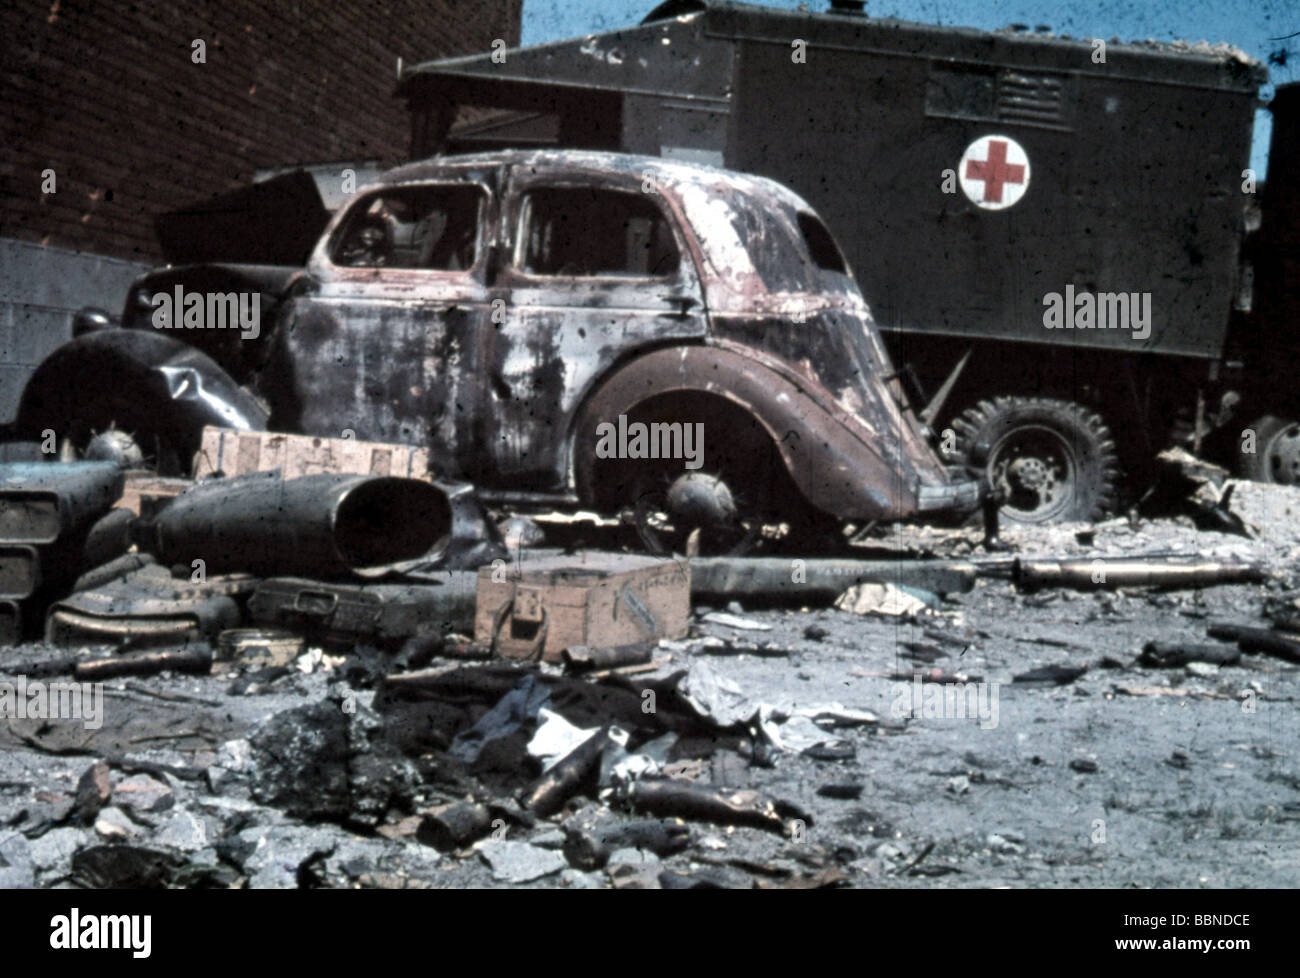 events, Second World War / WWII, France, Dunkirk, June 1940, abandoned and destroyed vehicles of the British Expeditionary Stock Photo